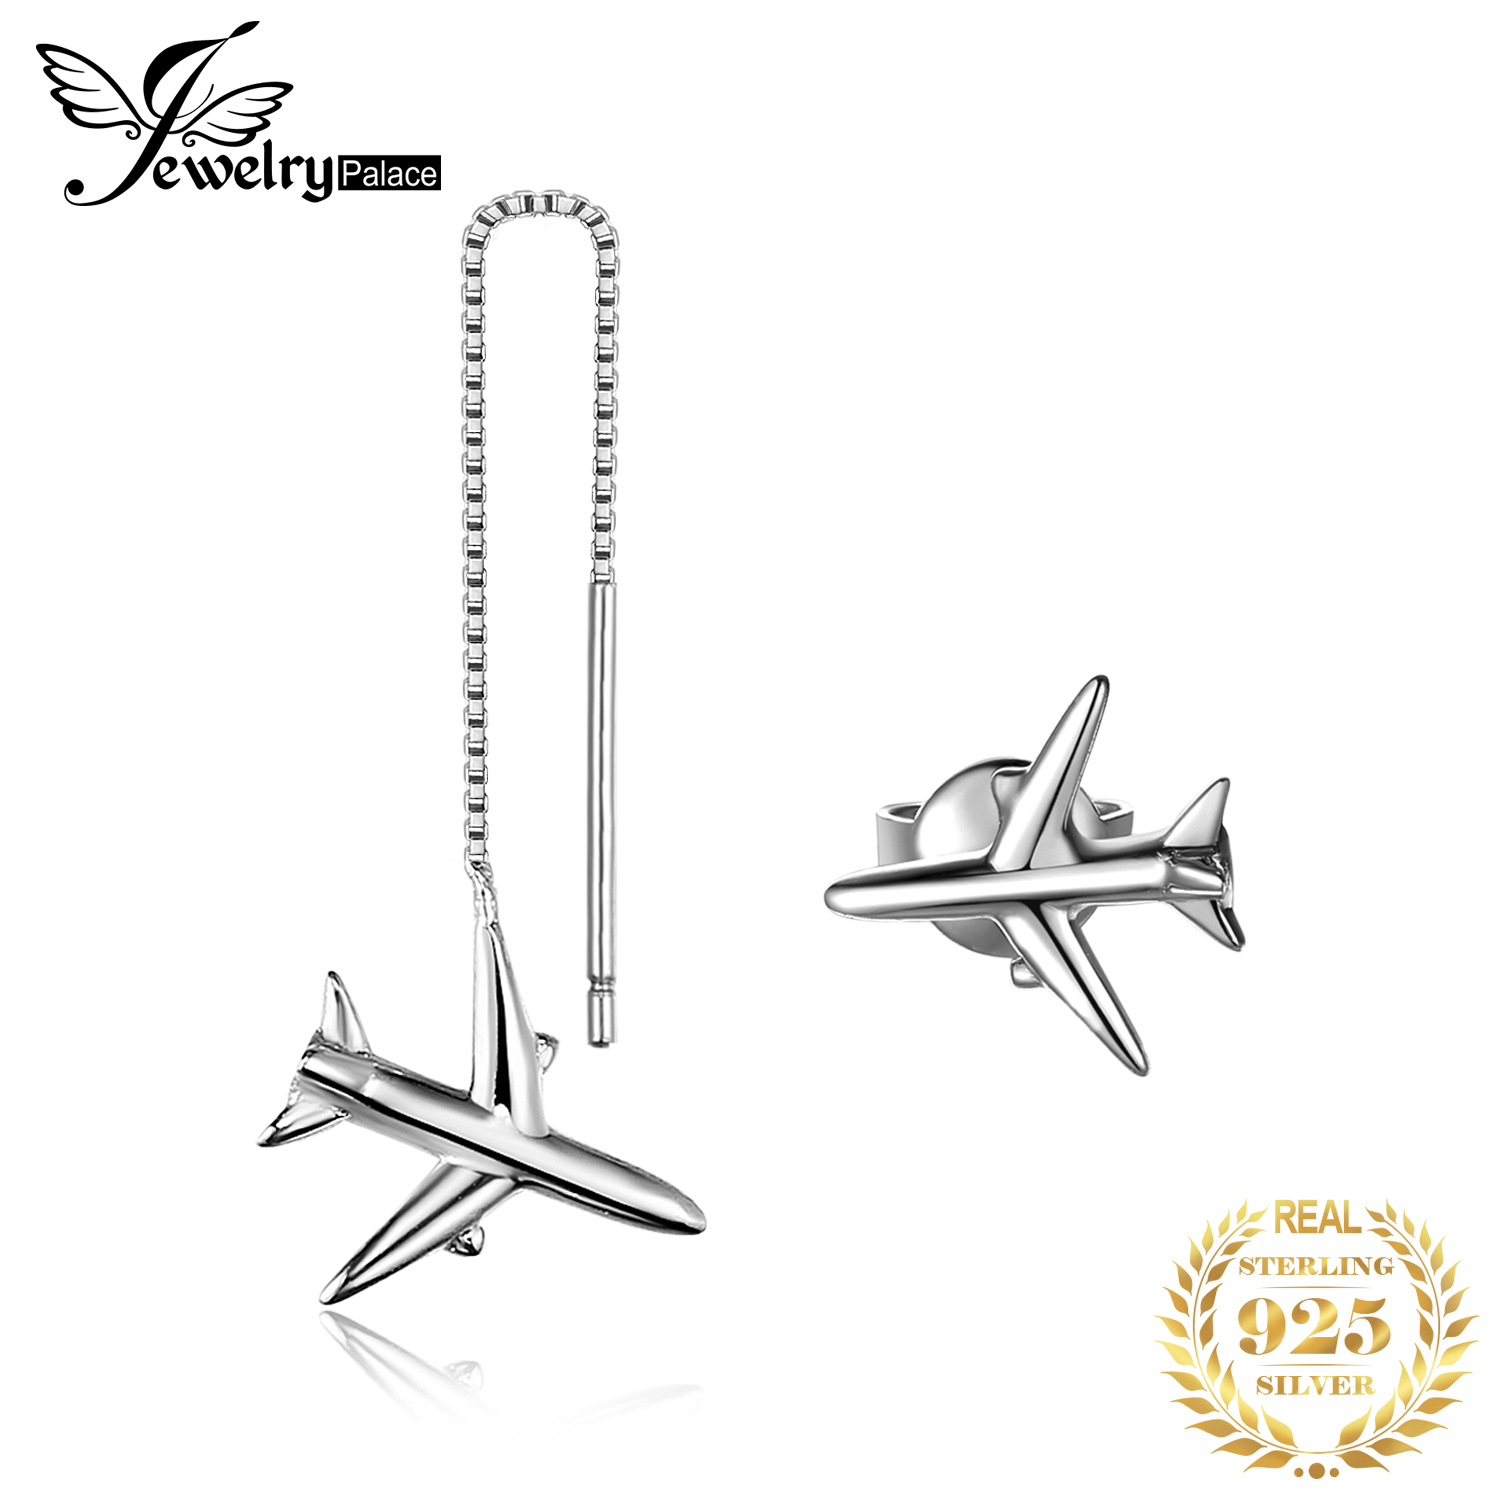 JewelryPalace Airplane Thread Drop Earrings 925 Sterling Silver Earrings For Women Girls Korean Earrings Fashion Jewelry 2020 image